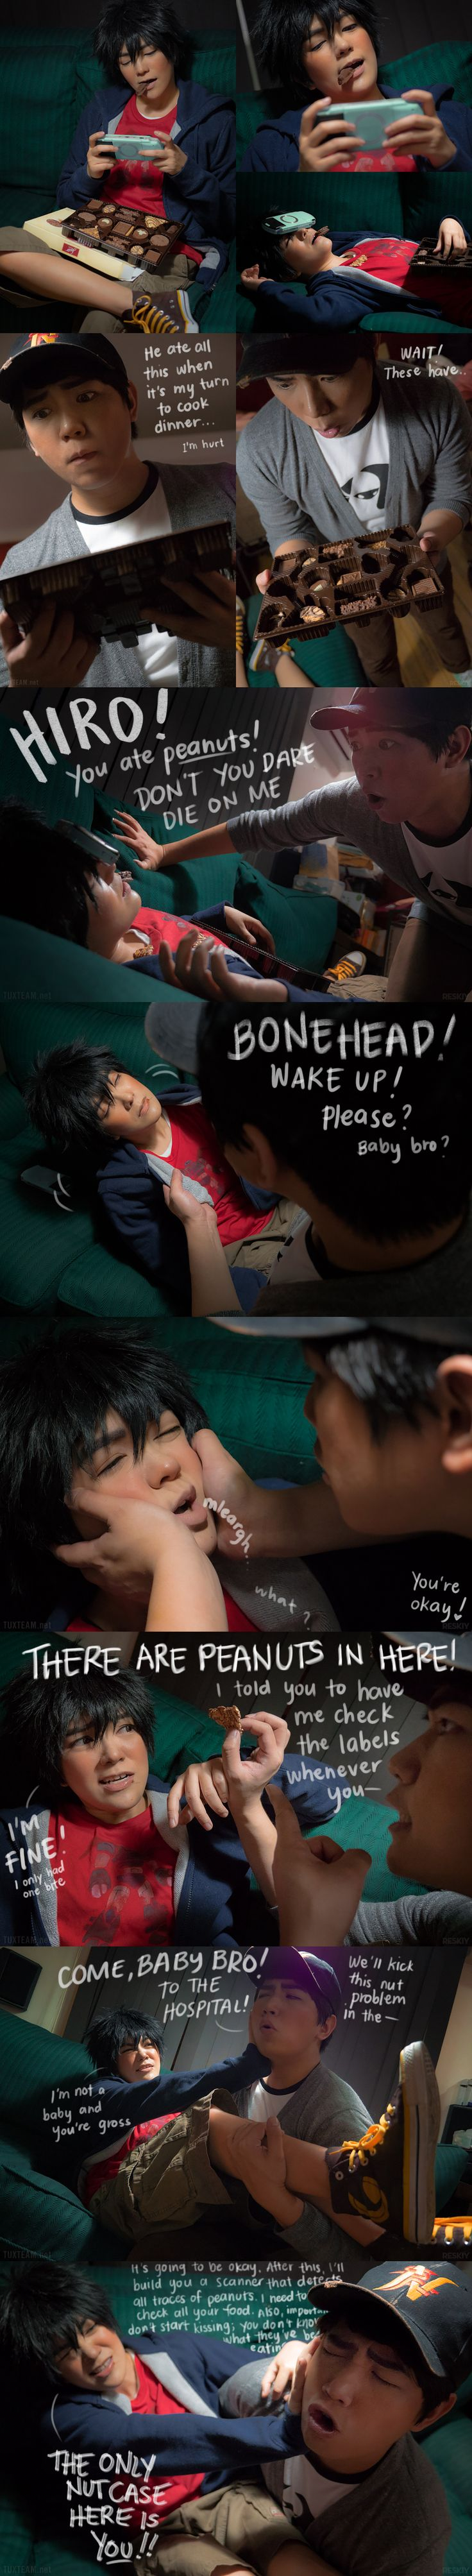 Big Hero 6 Tadashi being an overprotective brother to Hiro Hamada cosplay when Hiro accidently ate some candy that probably has peanuts in them that he is allergic to.